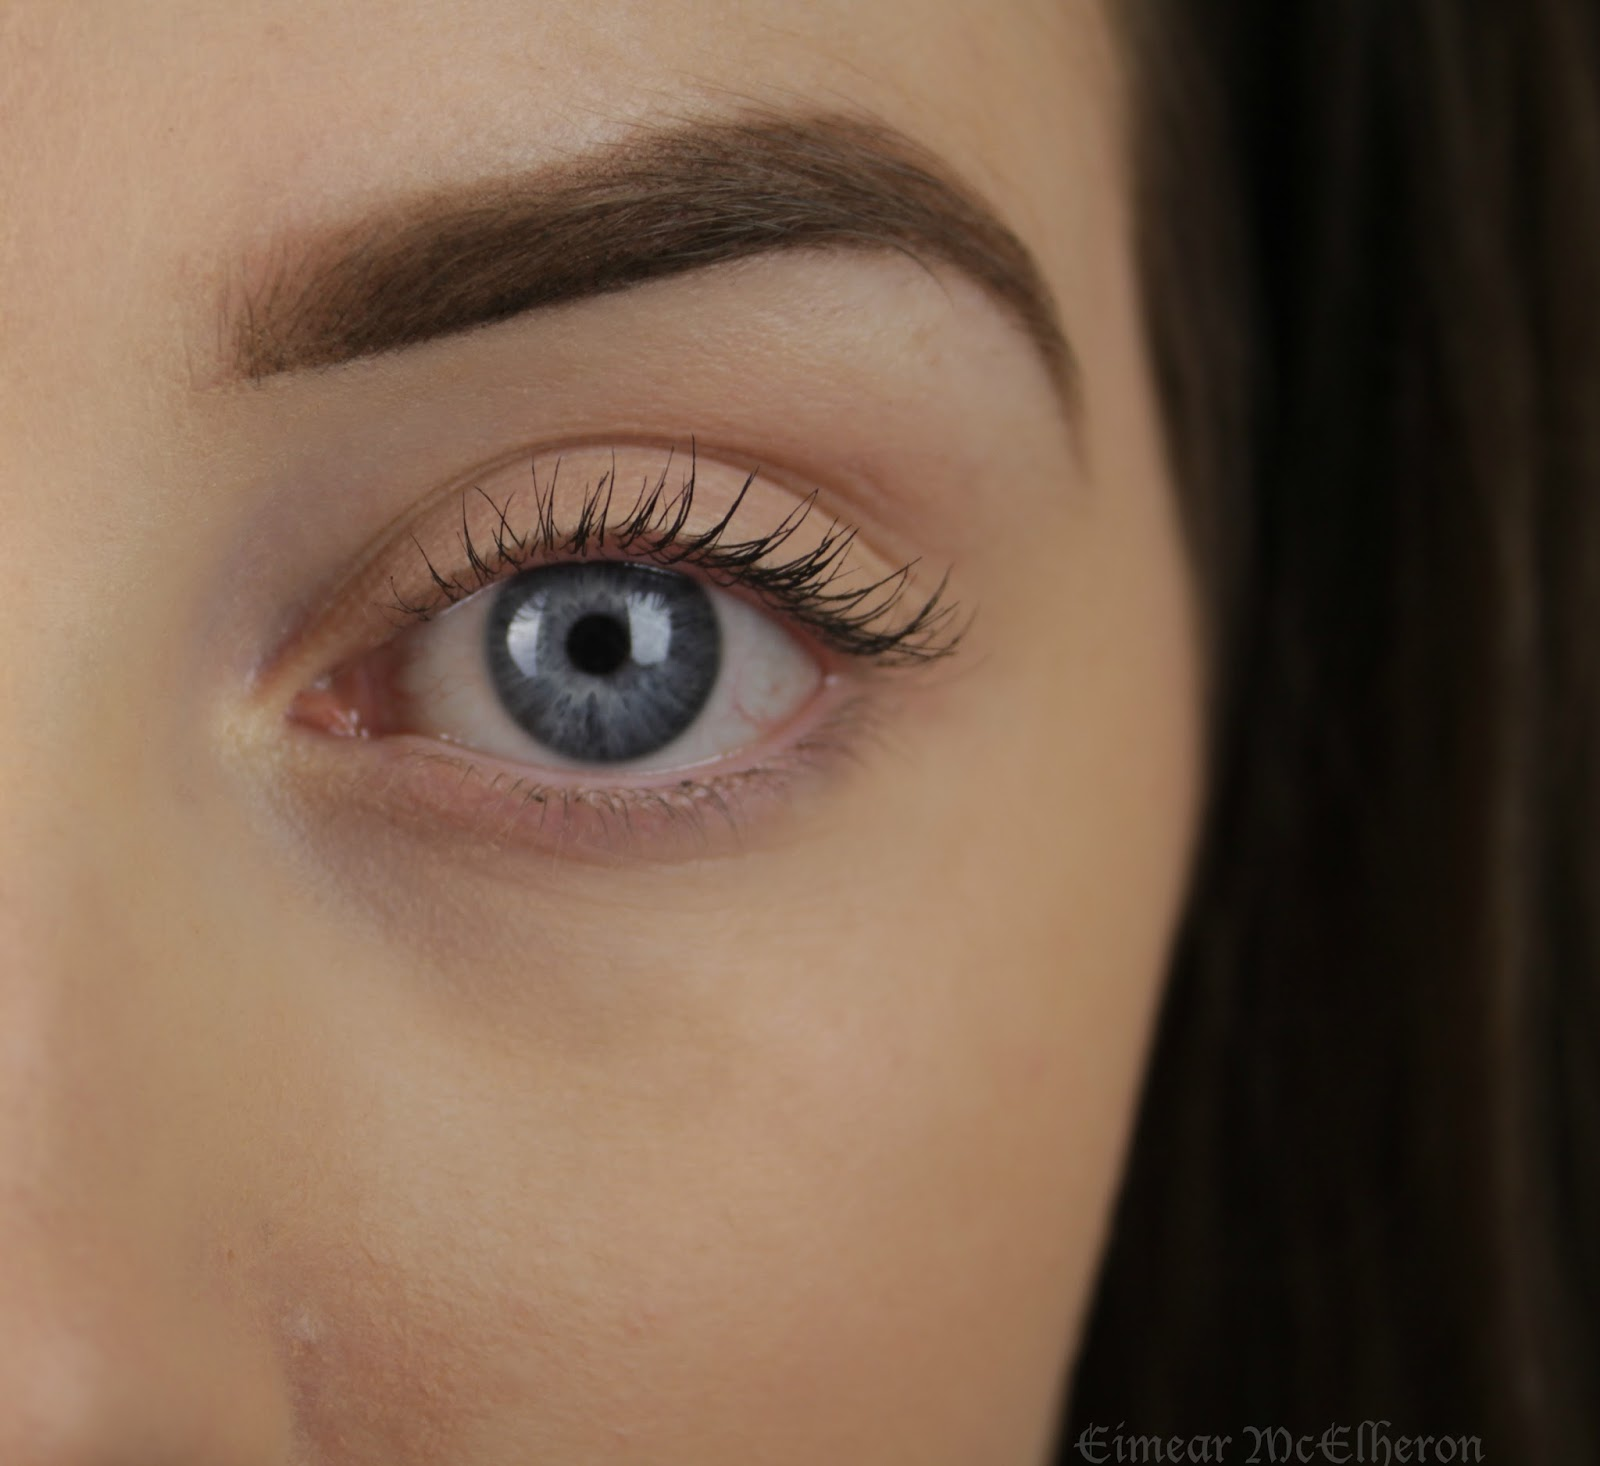 ec399c9b9c9 Eimear McElheron : w7 Absolute Lashes Mascara VS Benefit They're ...